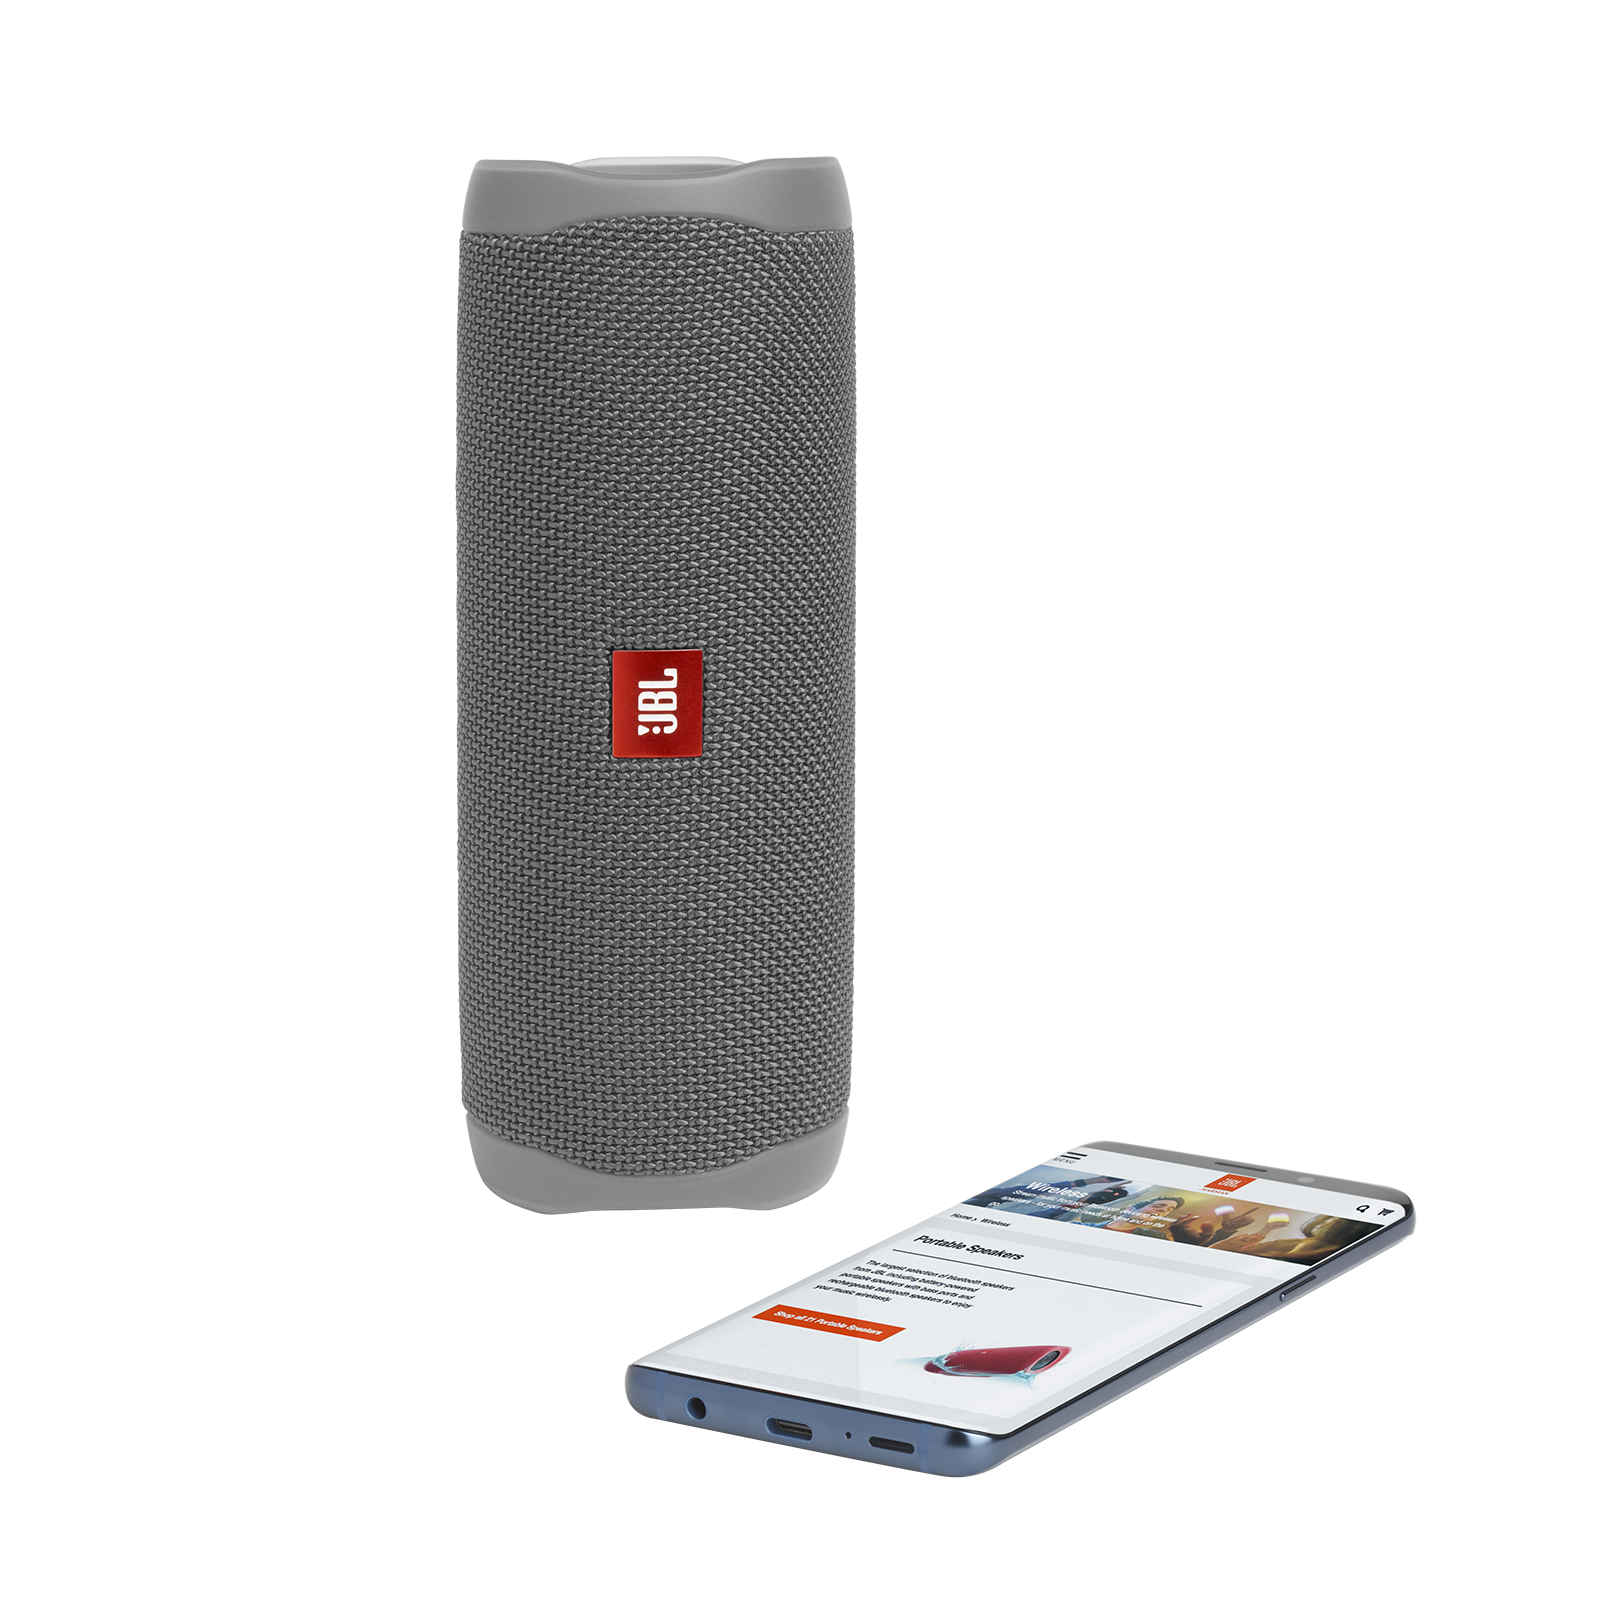 JBL FLIP 5 - Grey - Portable Waterproof Speaker - Detailshot 2